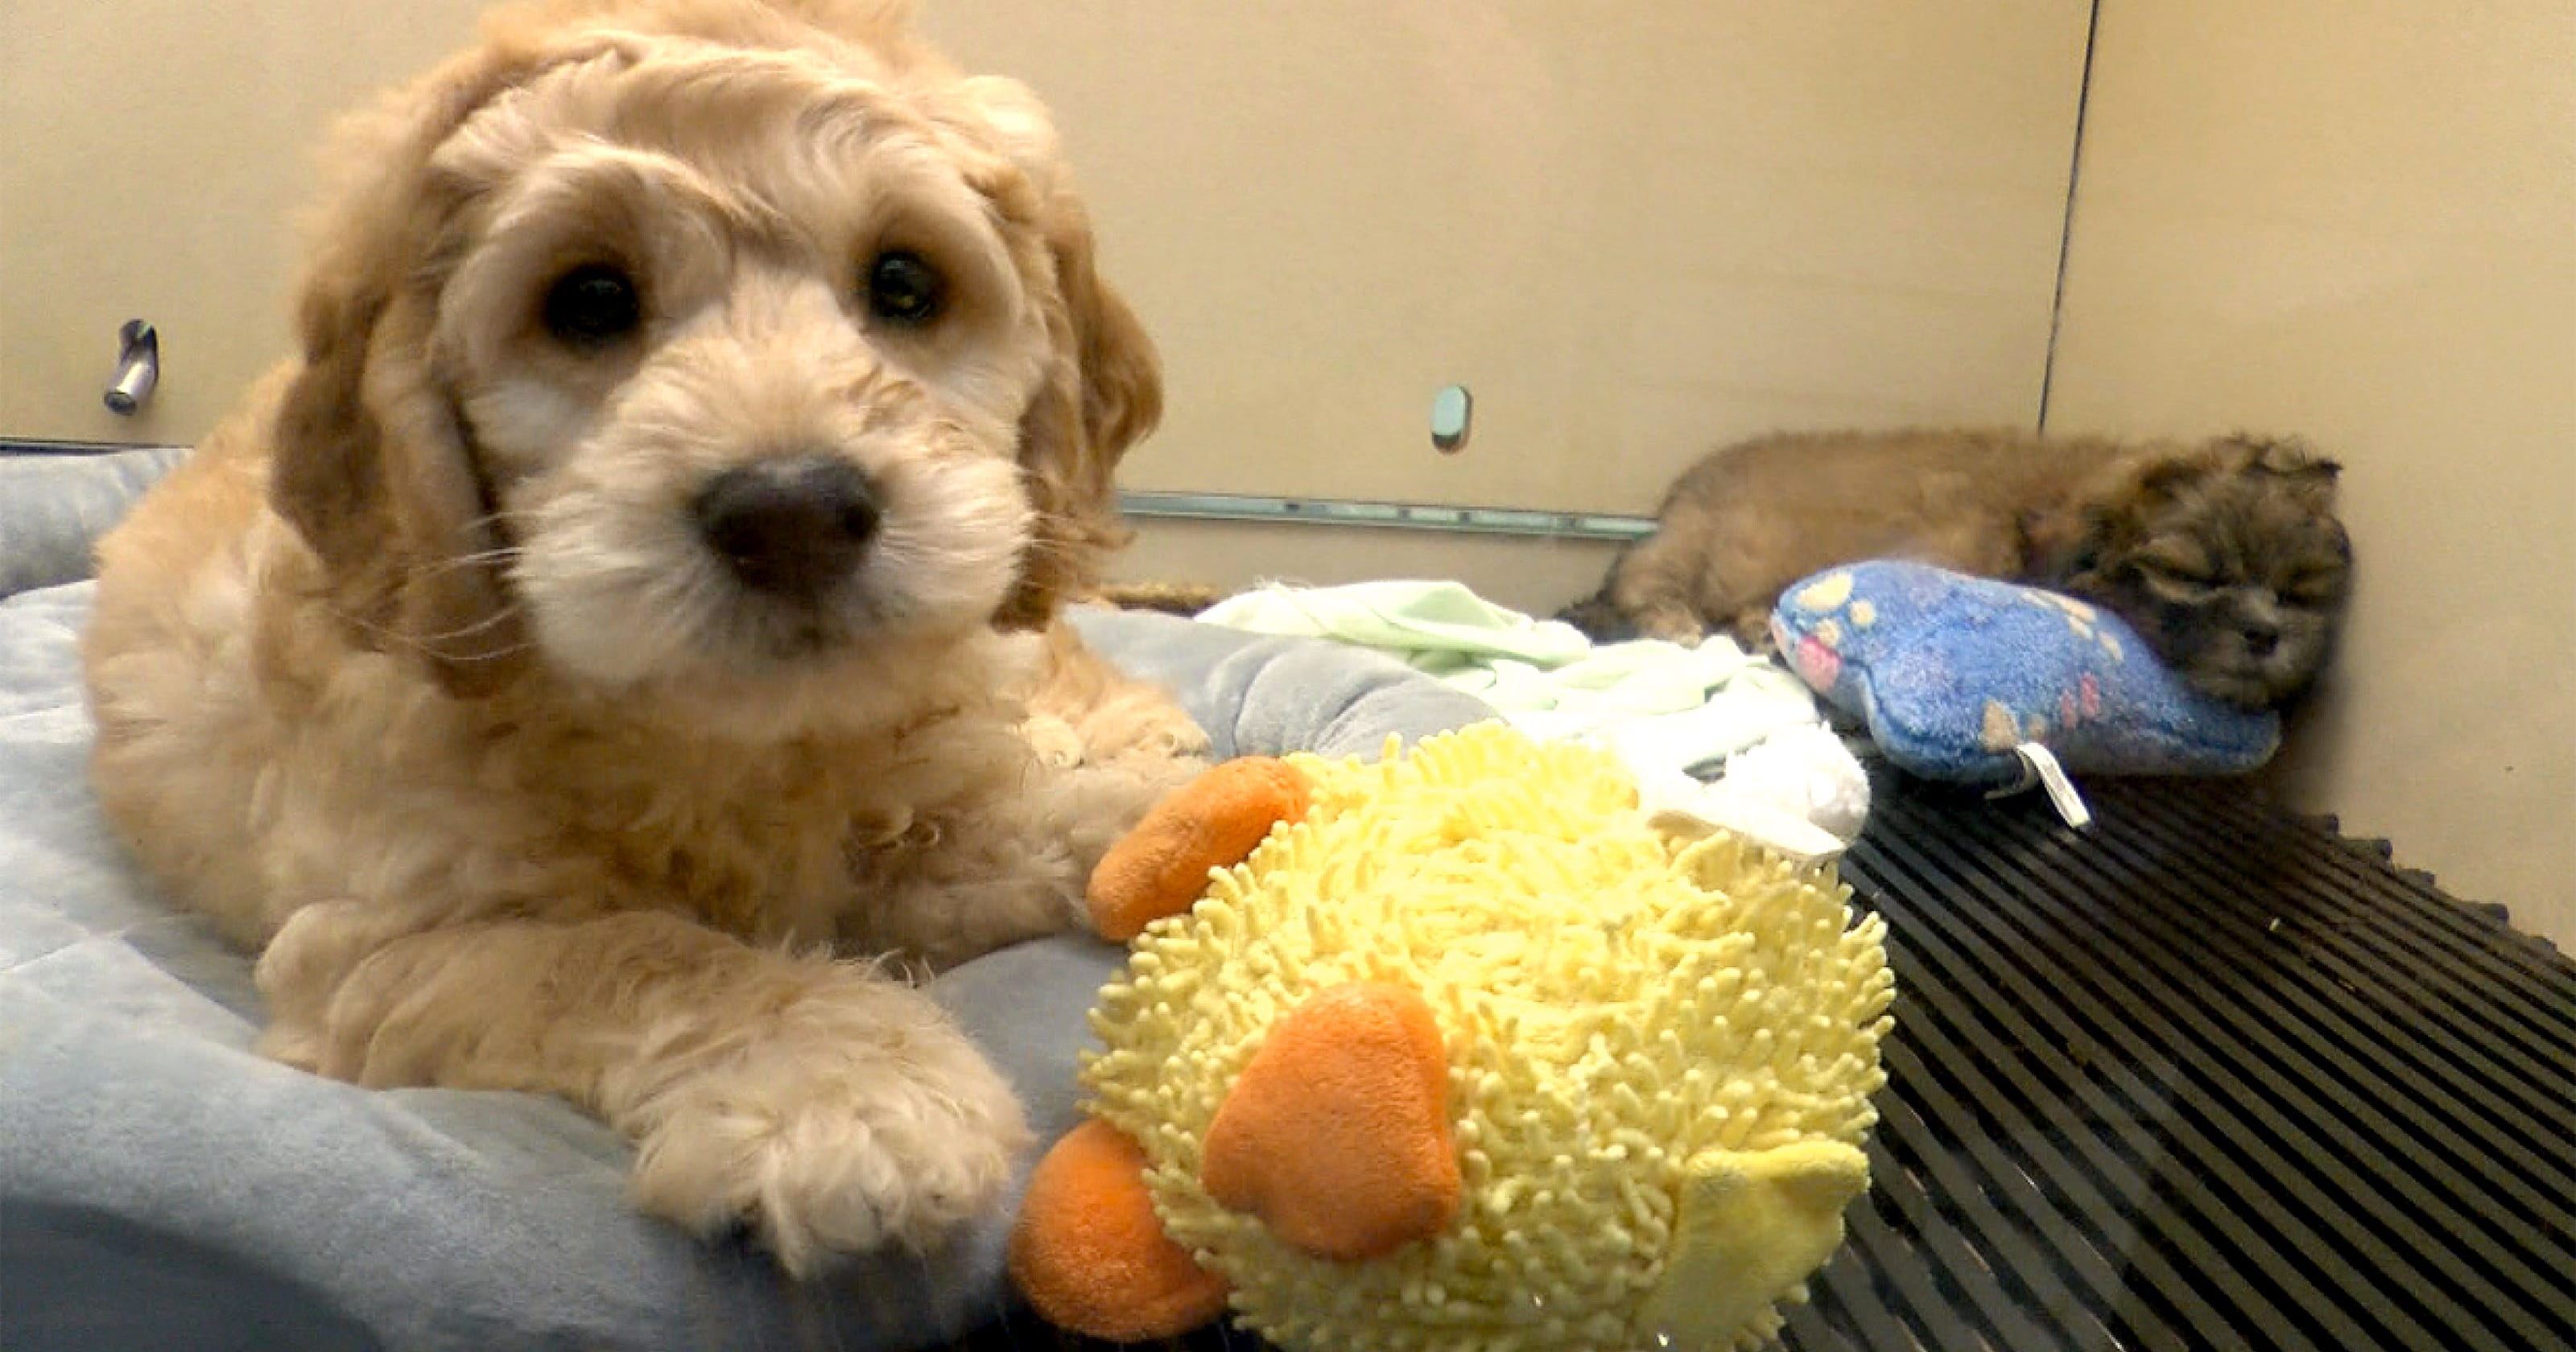 Bark Avenue Puppies: Red Bank ban would kill my business